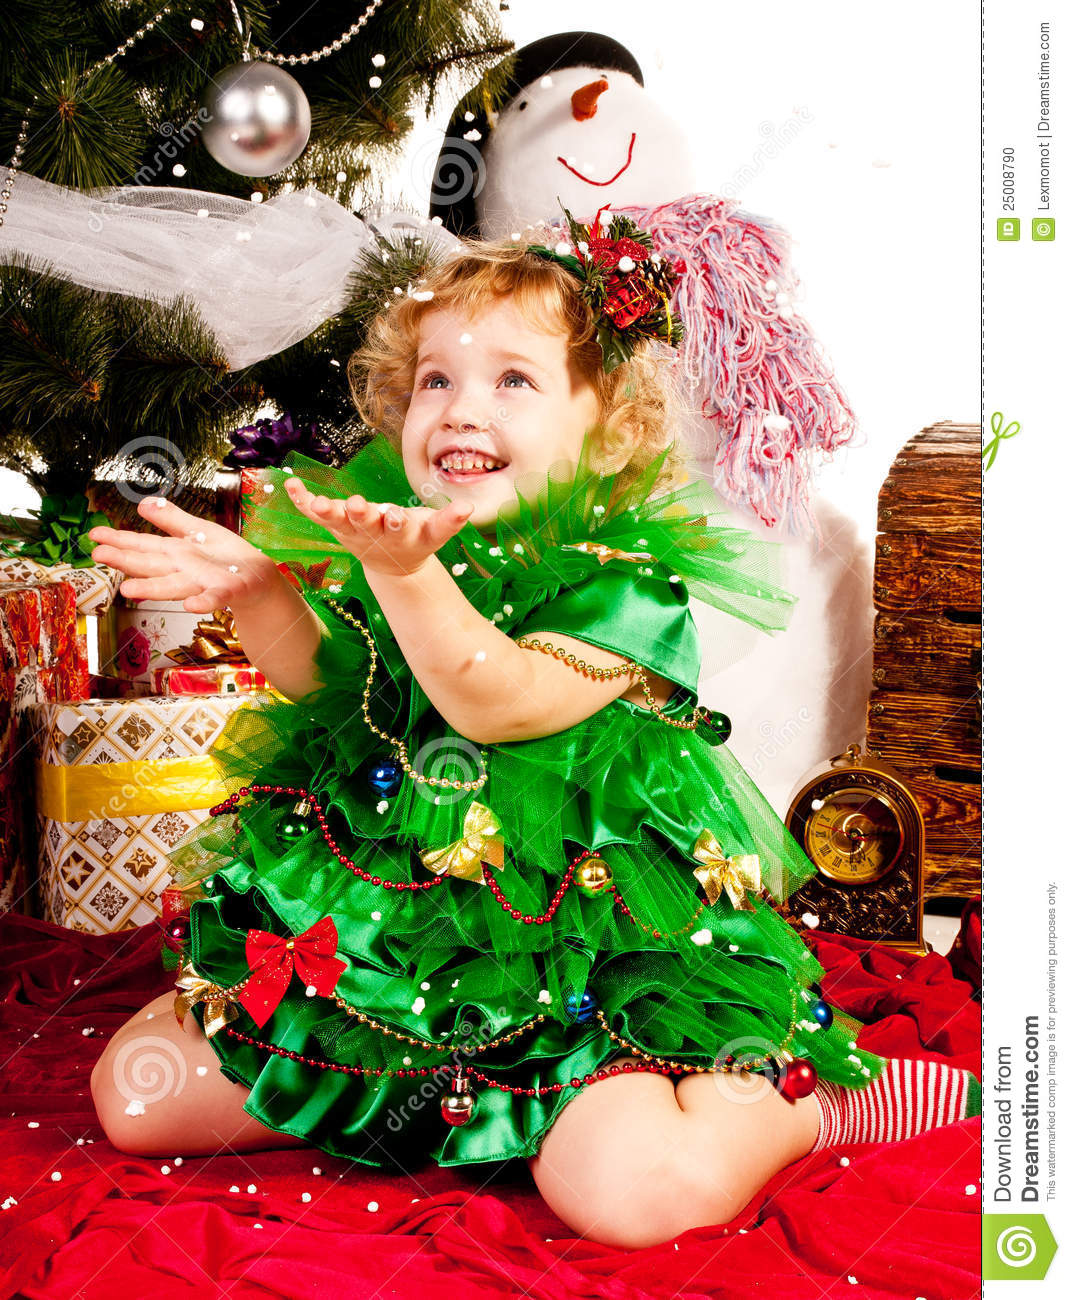 Little Girl Christmas Tree: A Girl Under The Christmas Tree With Gifts Stock Photo